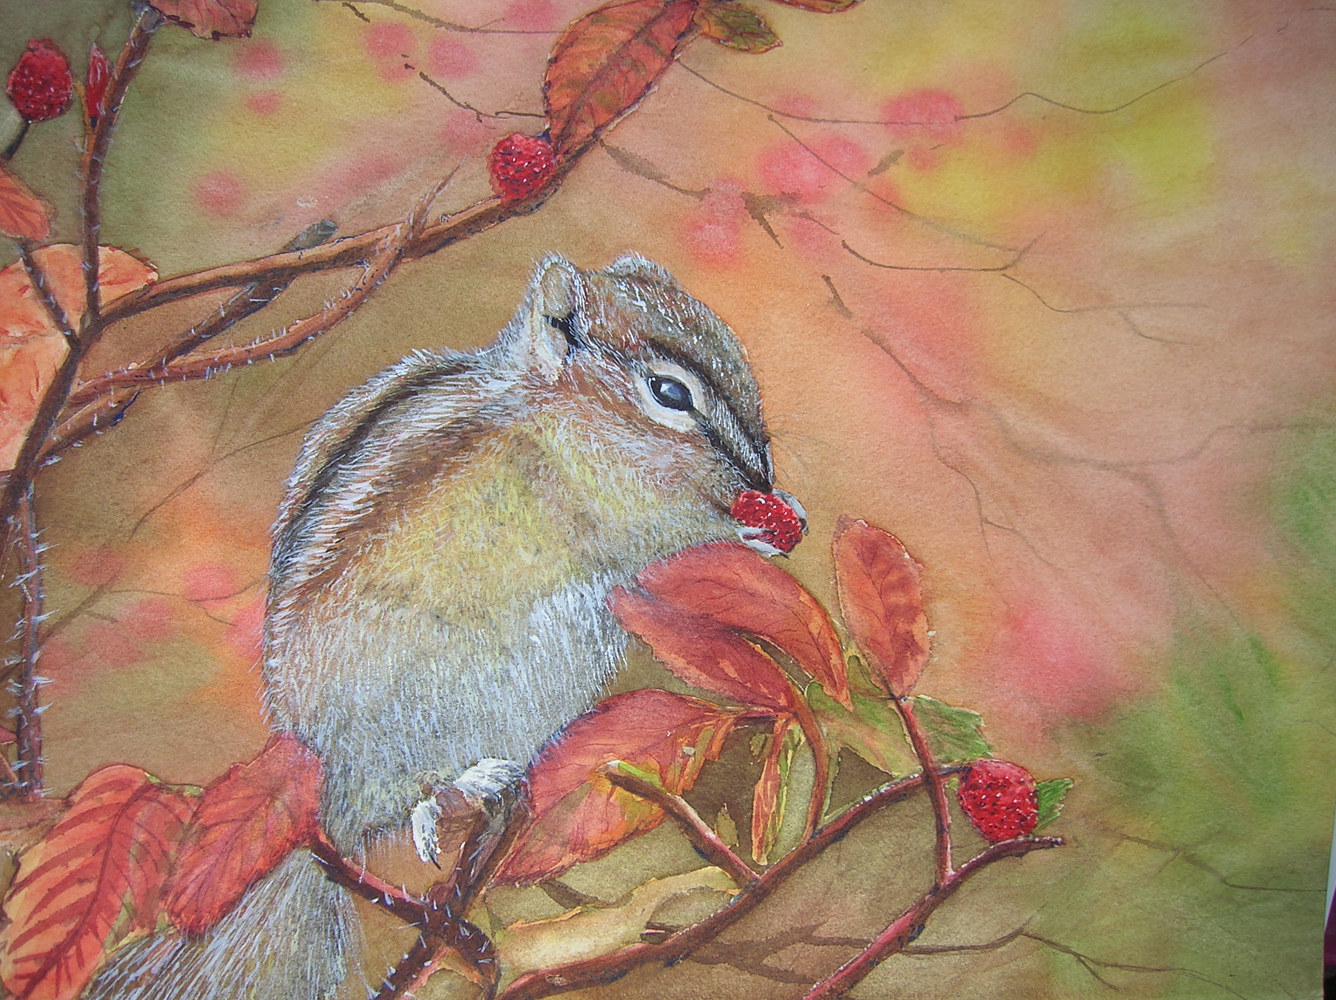 Watercolor A Tasty Treat by Vicki Allesia